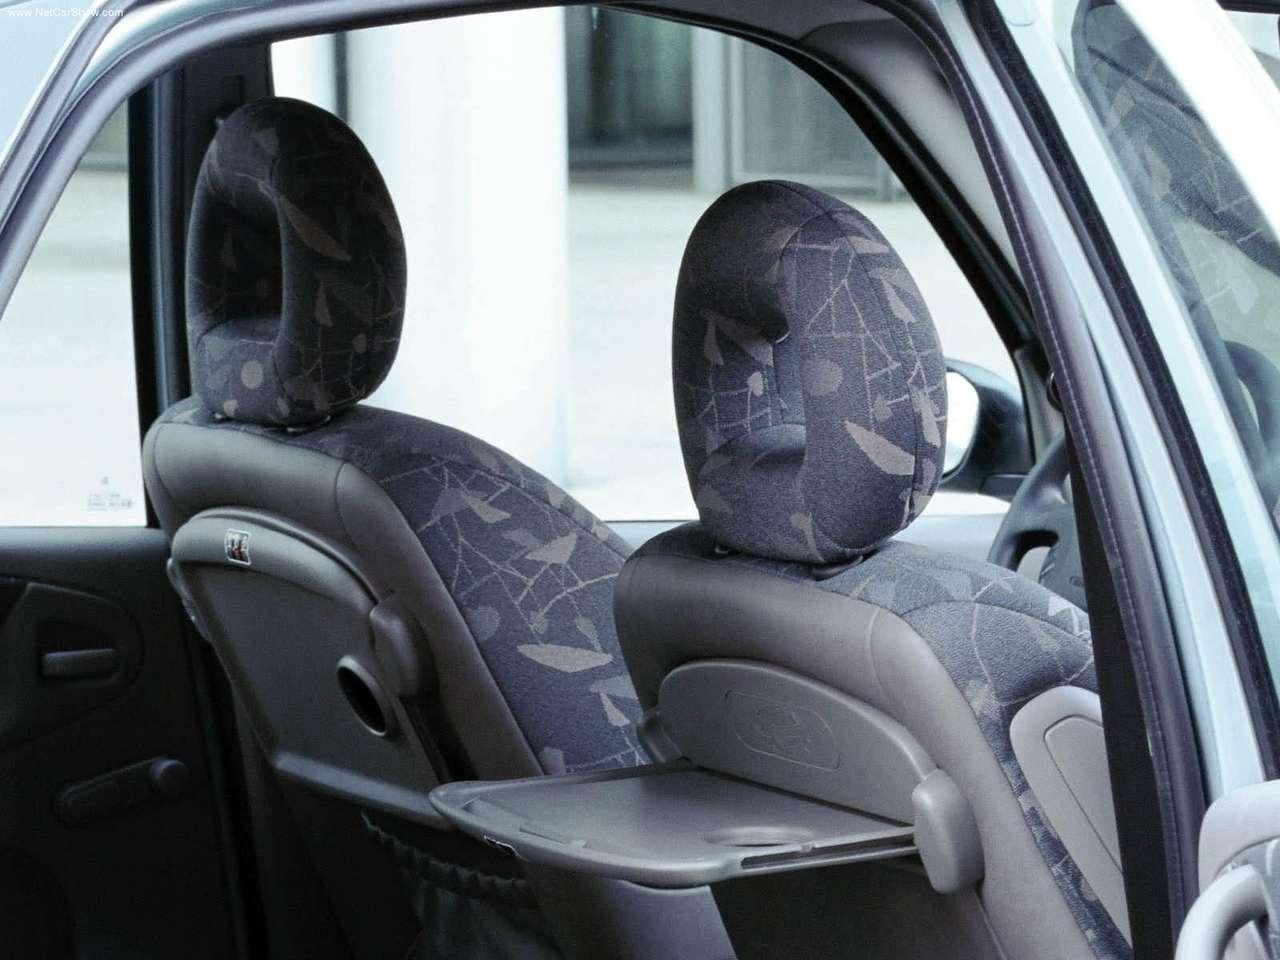 Xsara Picasso 1999 headrests